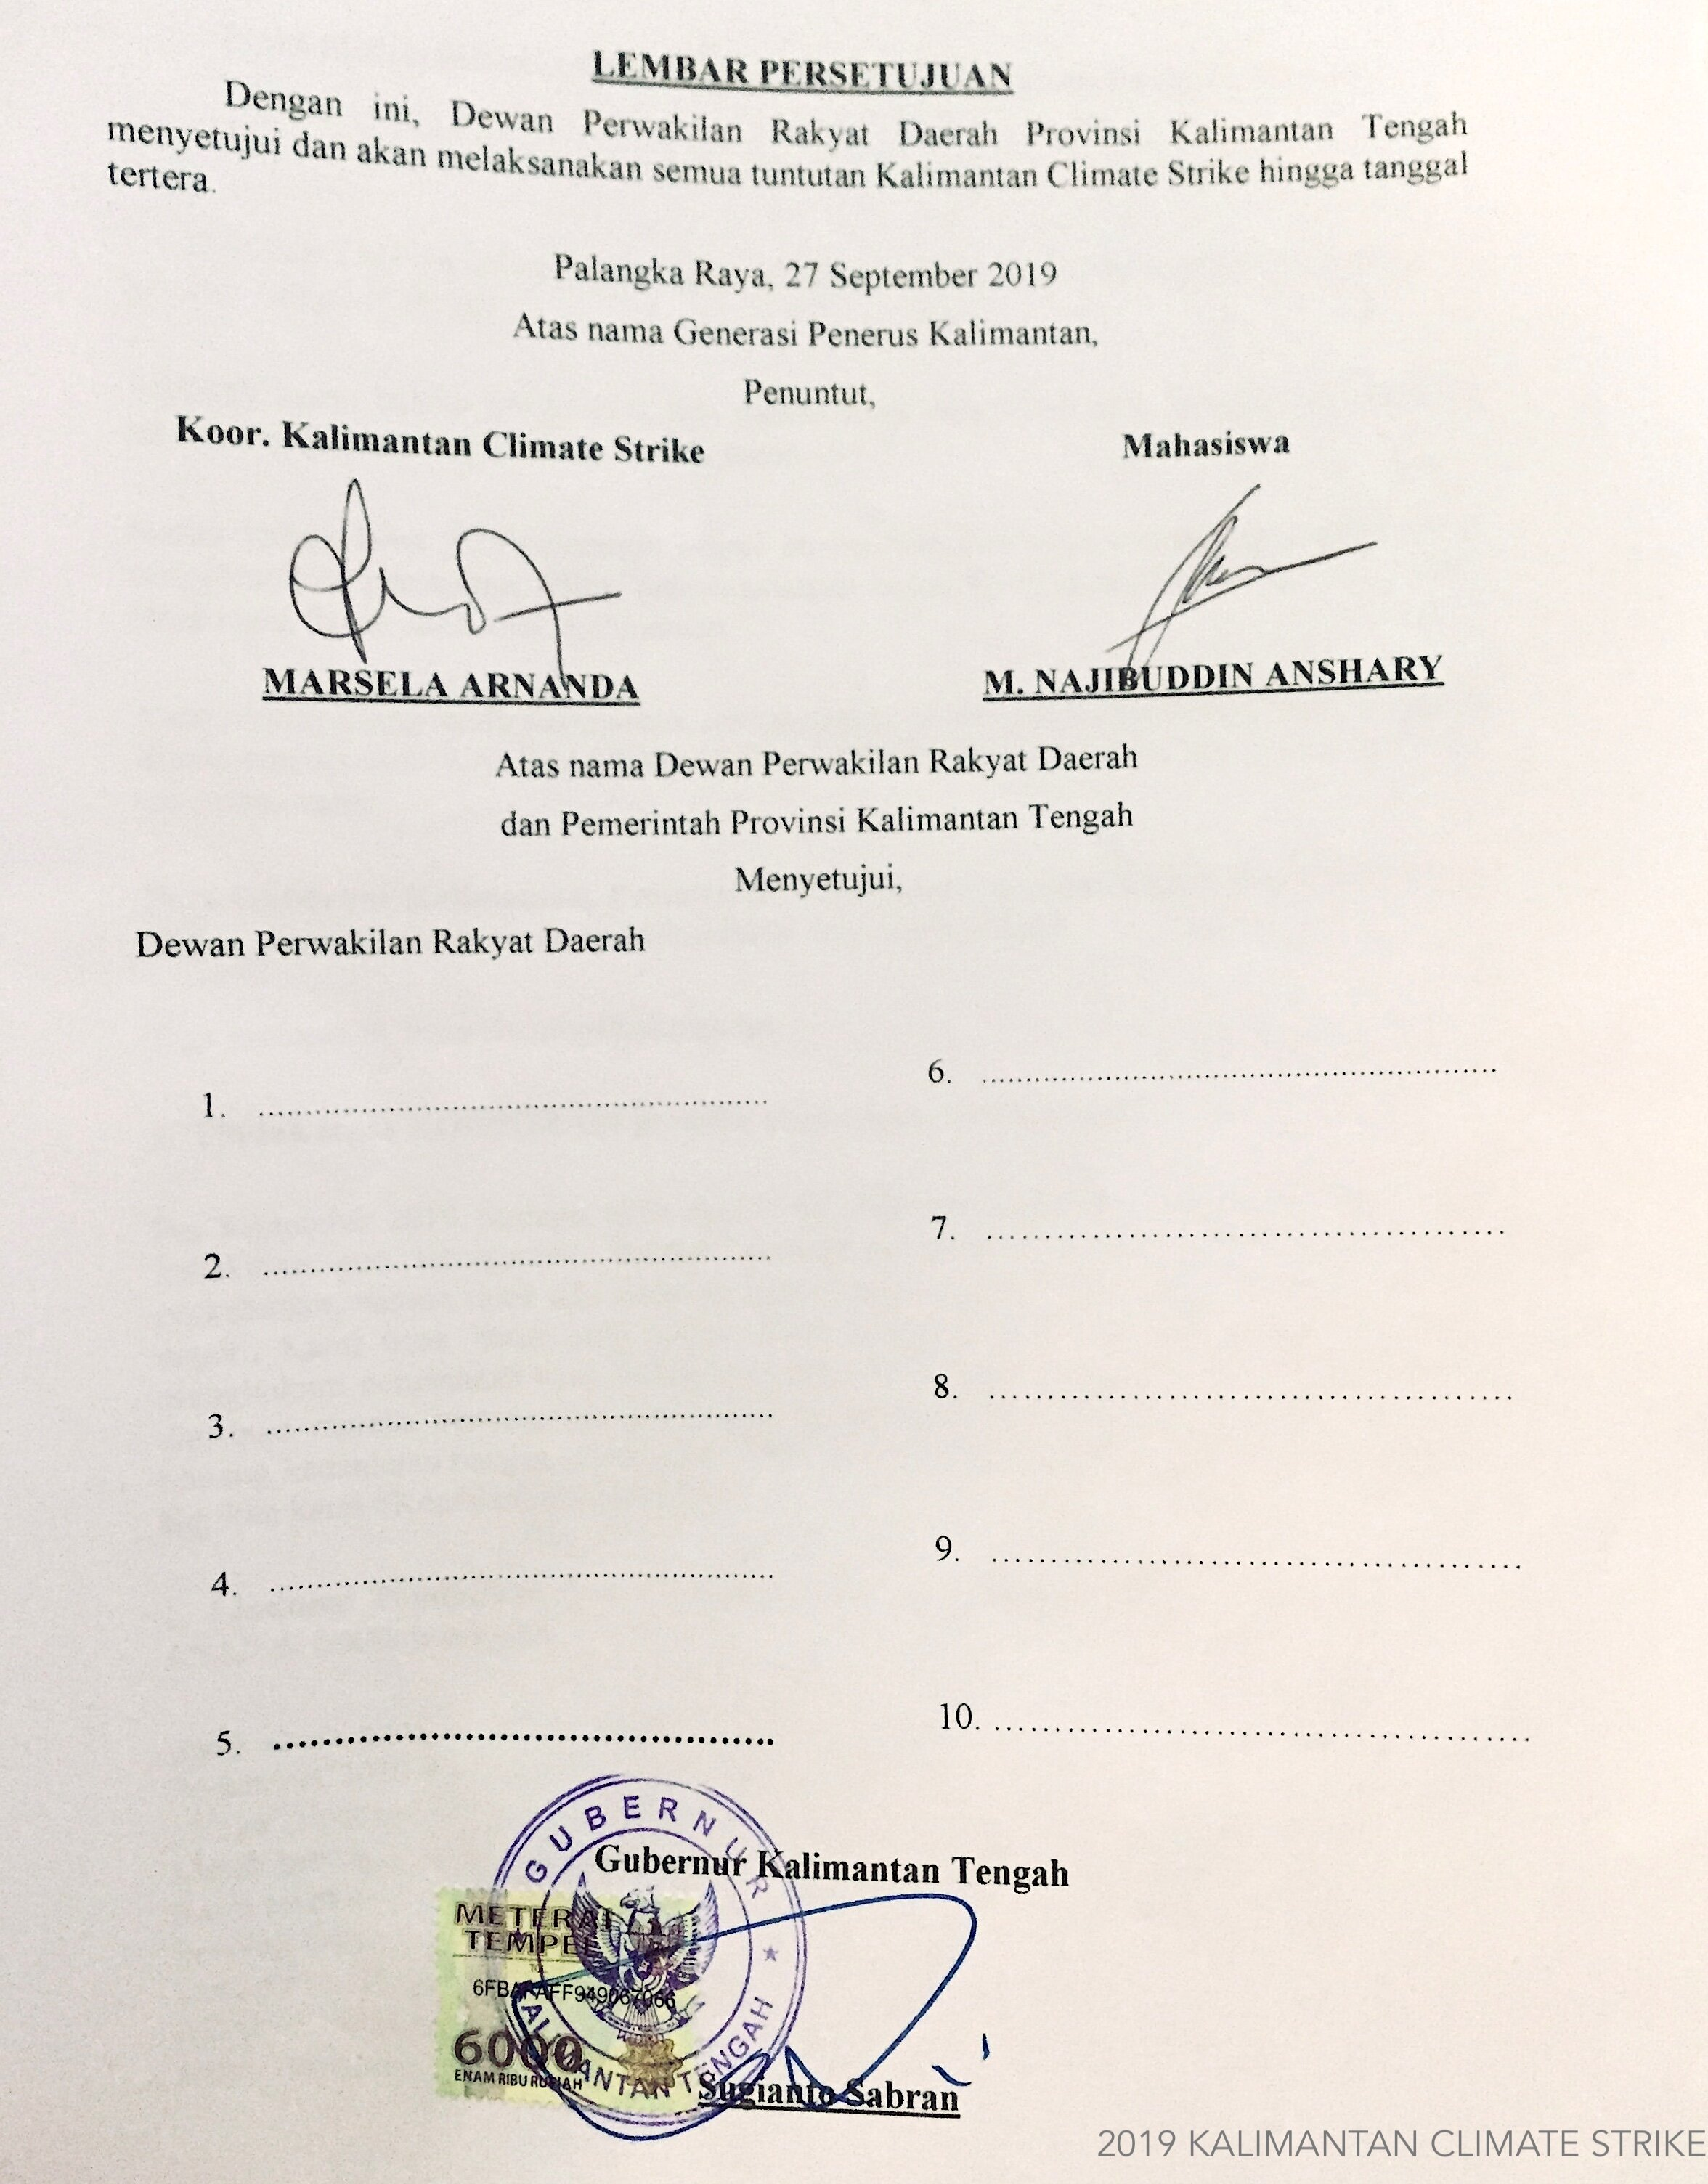 Kalimantan Climate Strike Petition Agreement Letter signed by the governor, left blank by the parliament members.